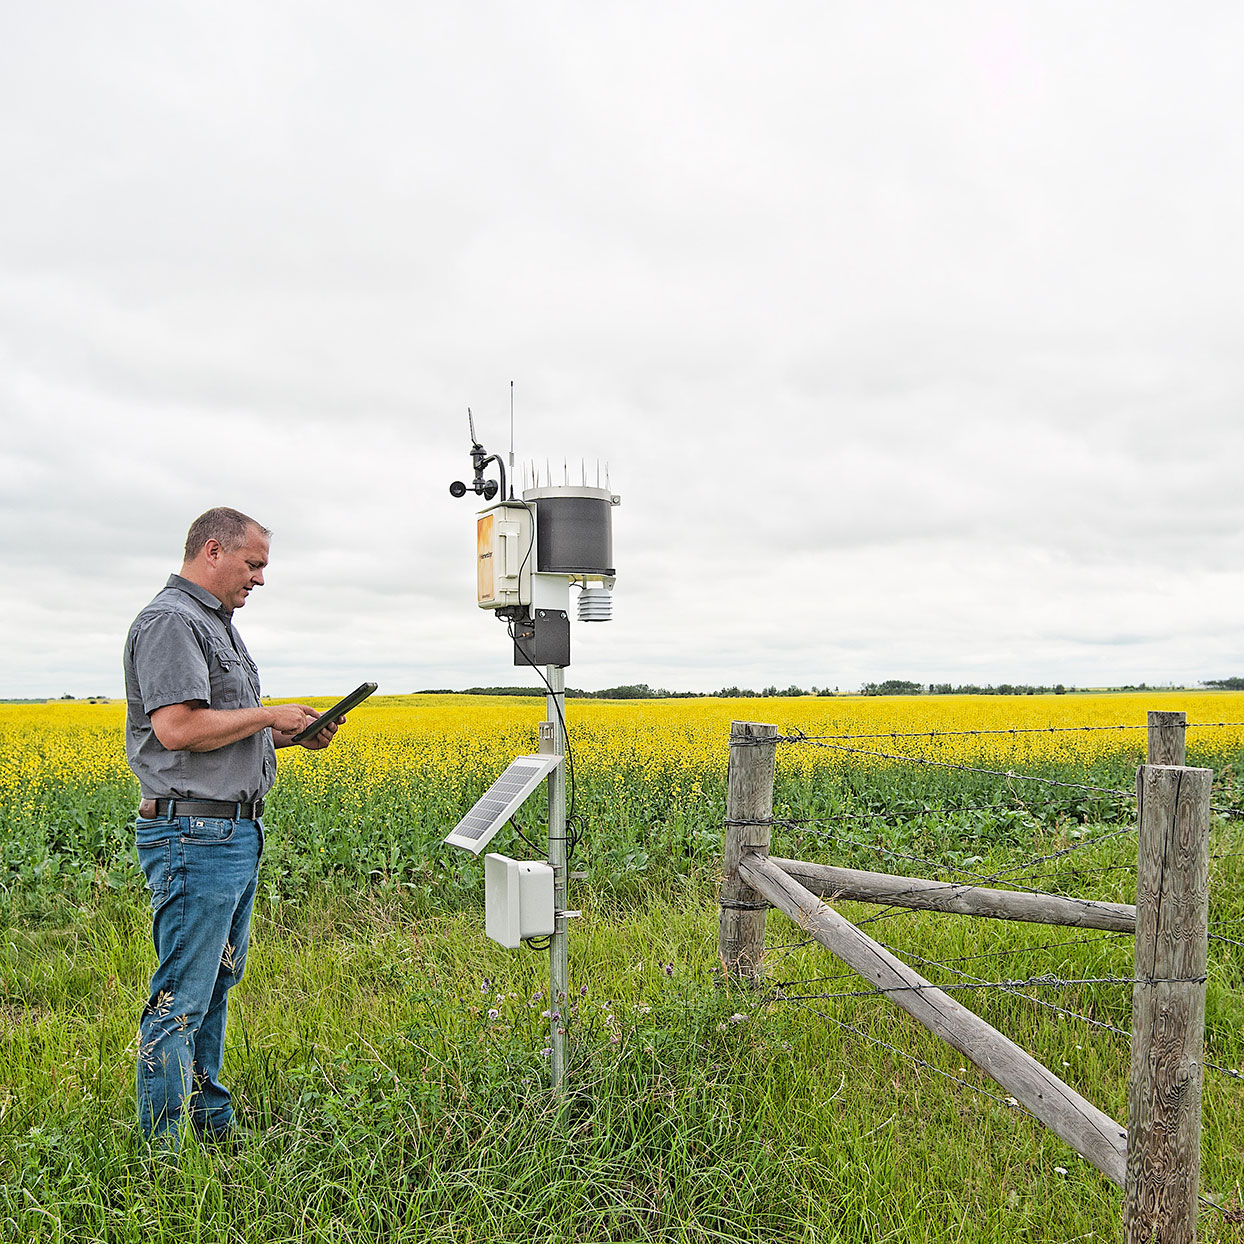 Trevor Scherman analyzing weather station on farm